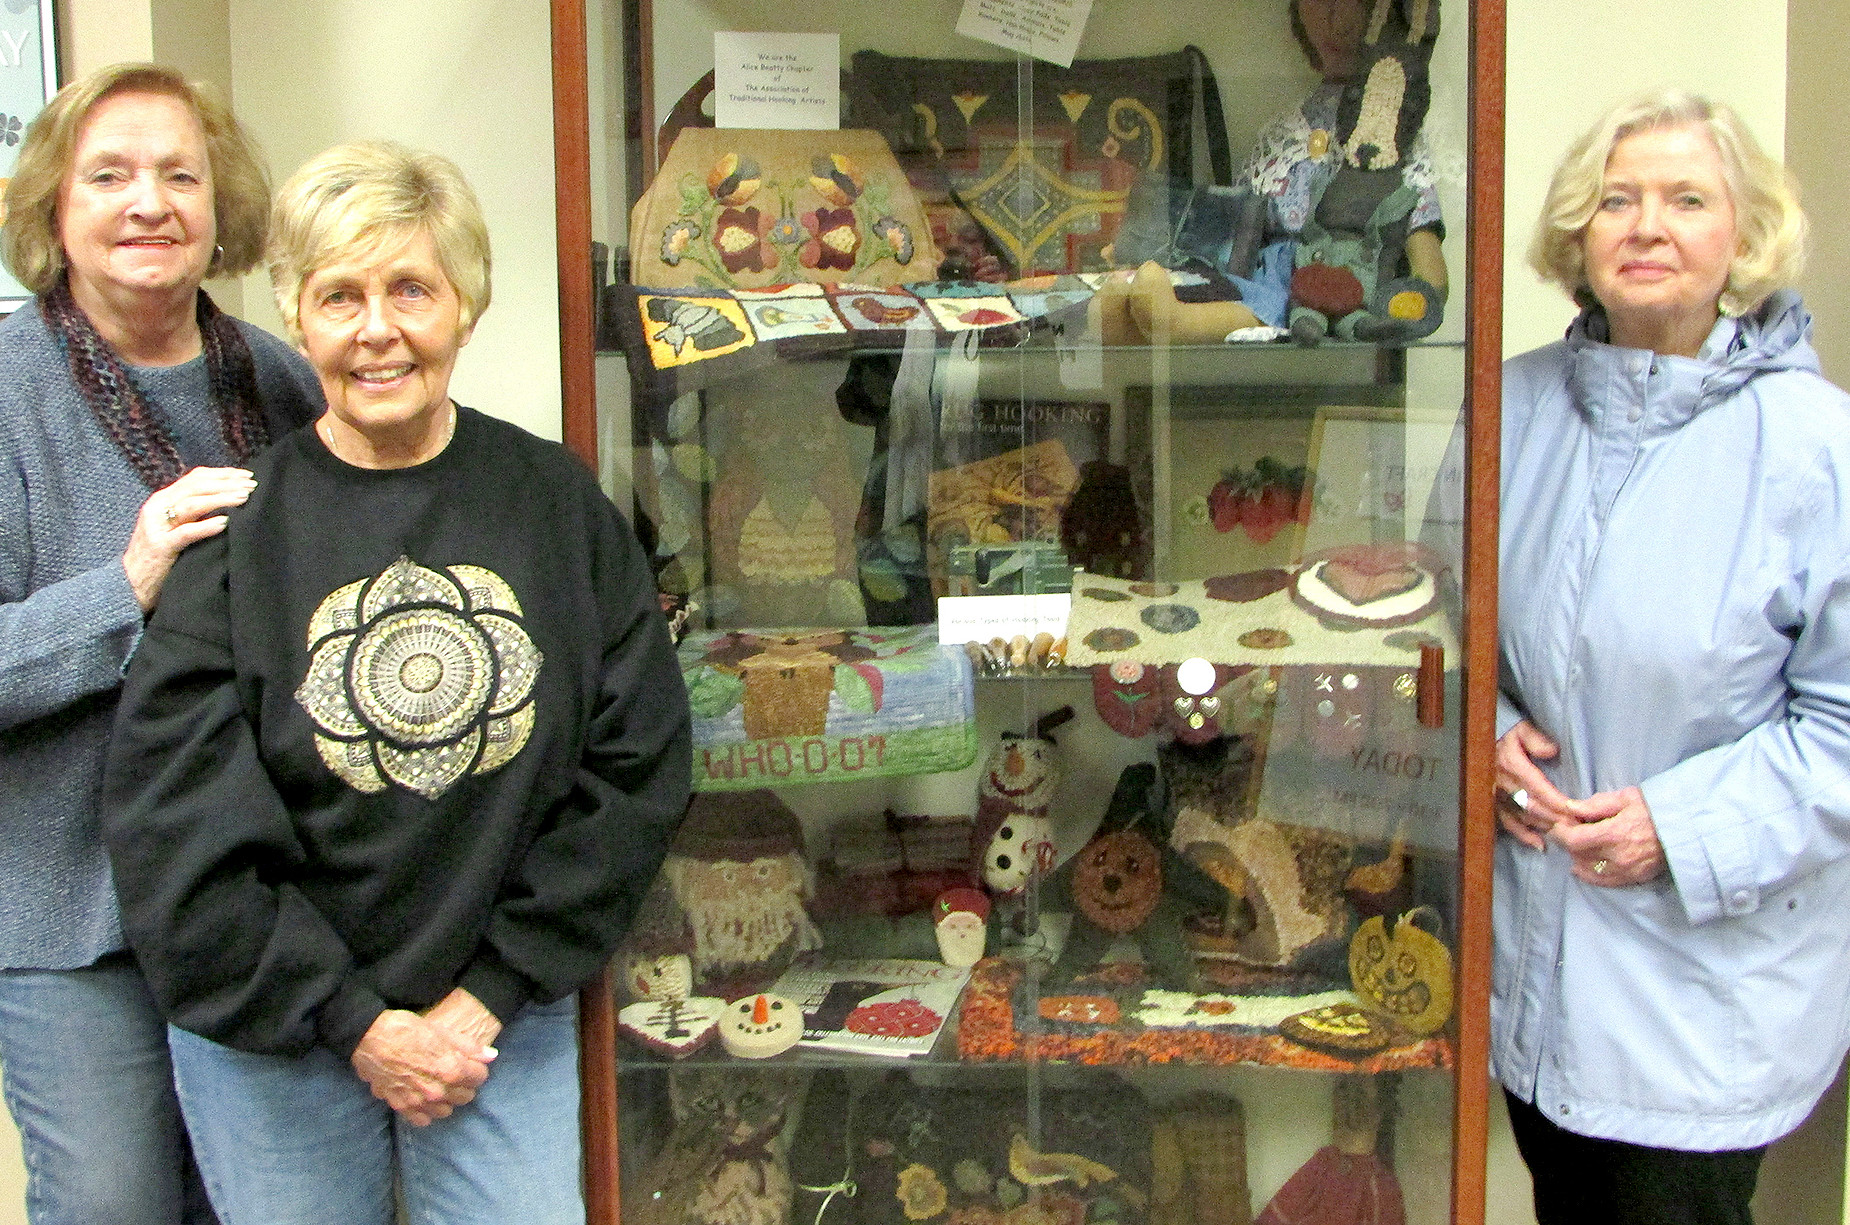 (above) The Alice Beatty Chapter of The Association of Traditional Hooking Artists members (left to right): Arline W.Bechtoldt- Apgar, Susan Johnson, and Phyllis Fittipaldi.